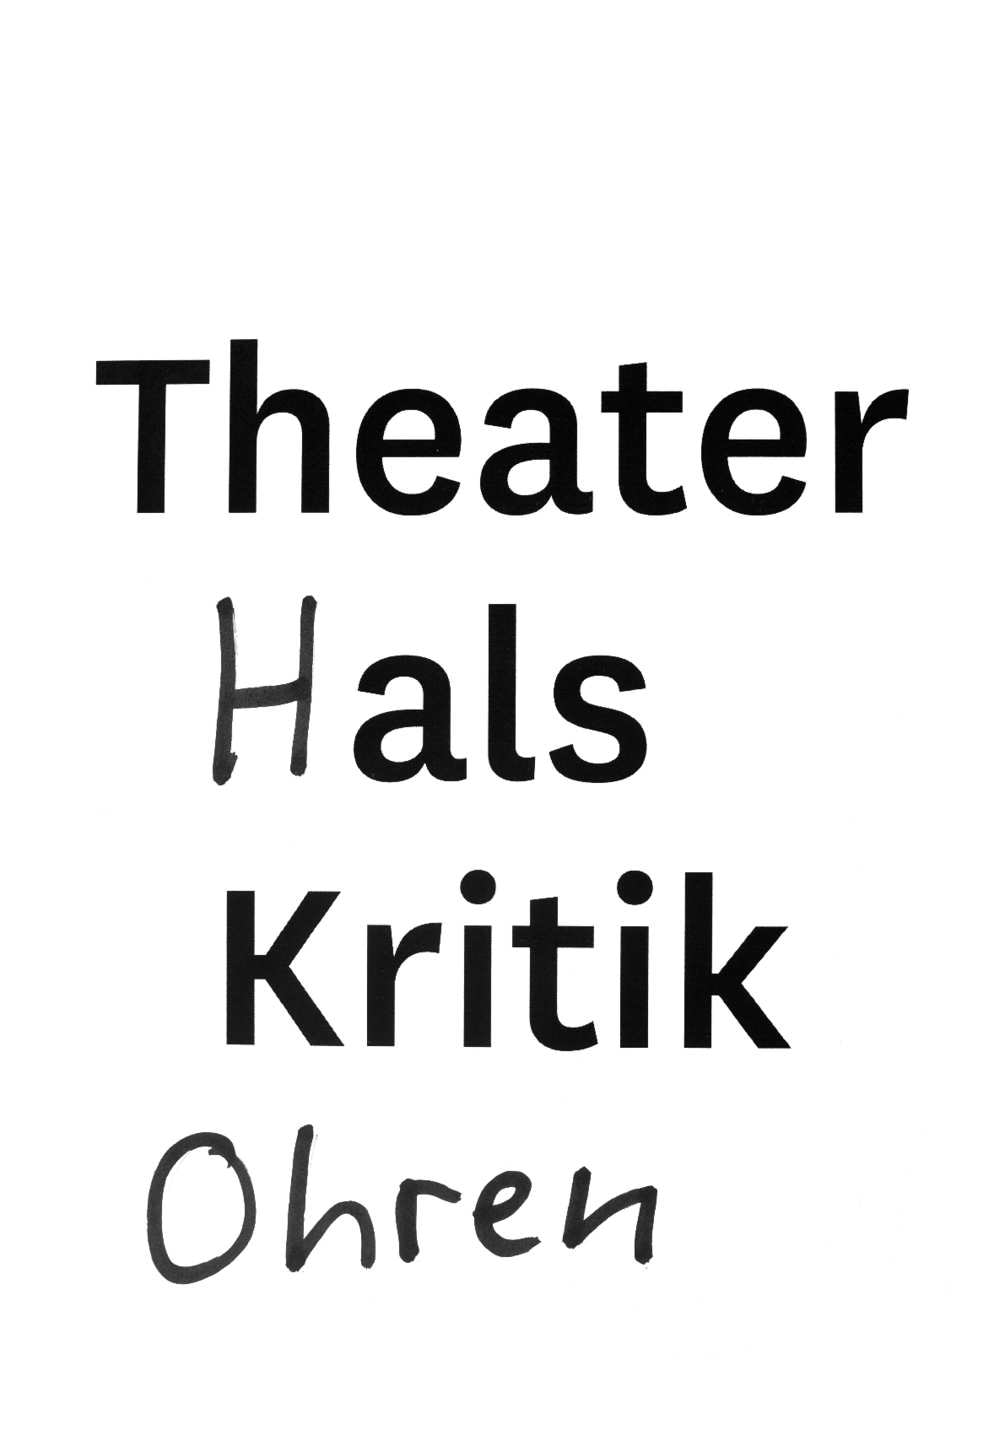 theater-as-critique-slip-25-1005x1435px